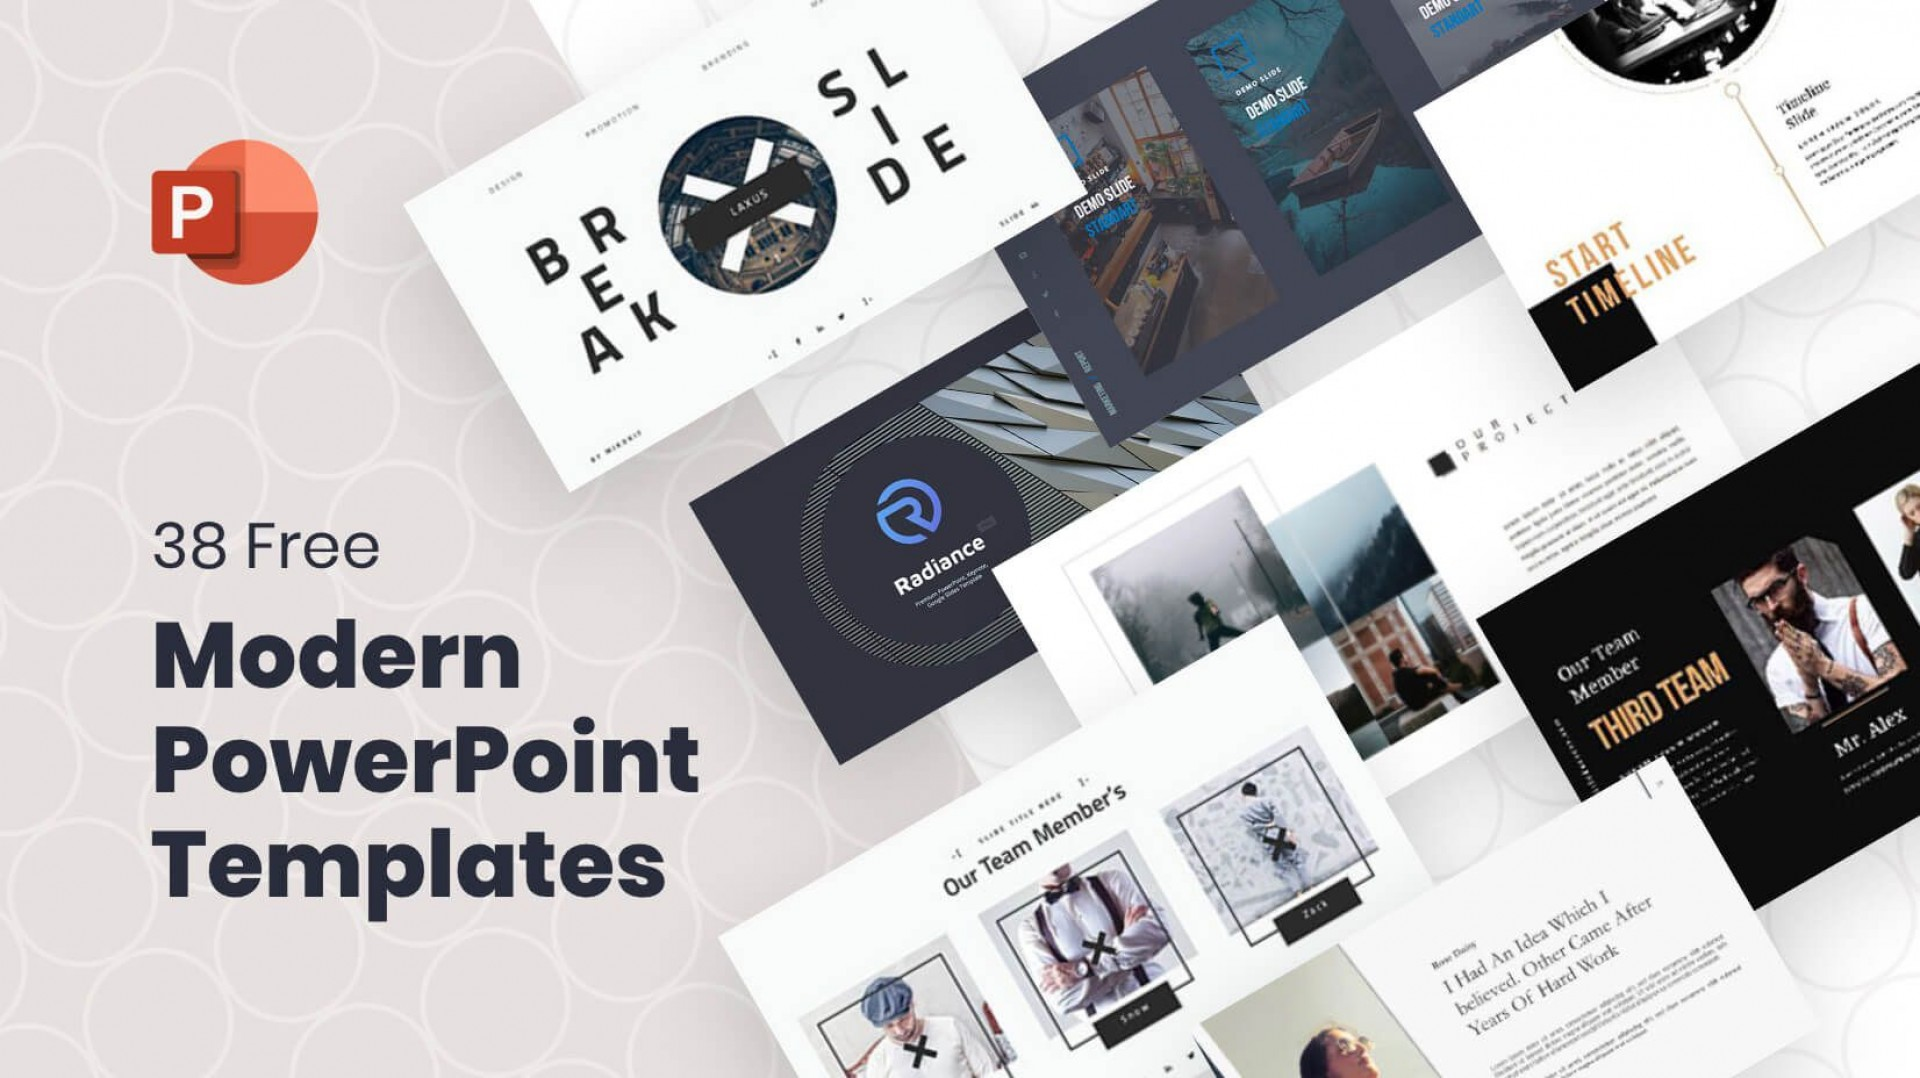 001 Unusual Ppt Slide Design Template Free Download Highest Quality  One Resume Team Introduction Powerpoint Presentation1920